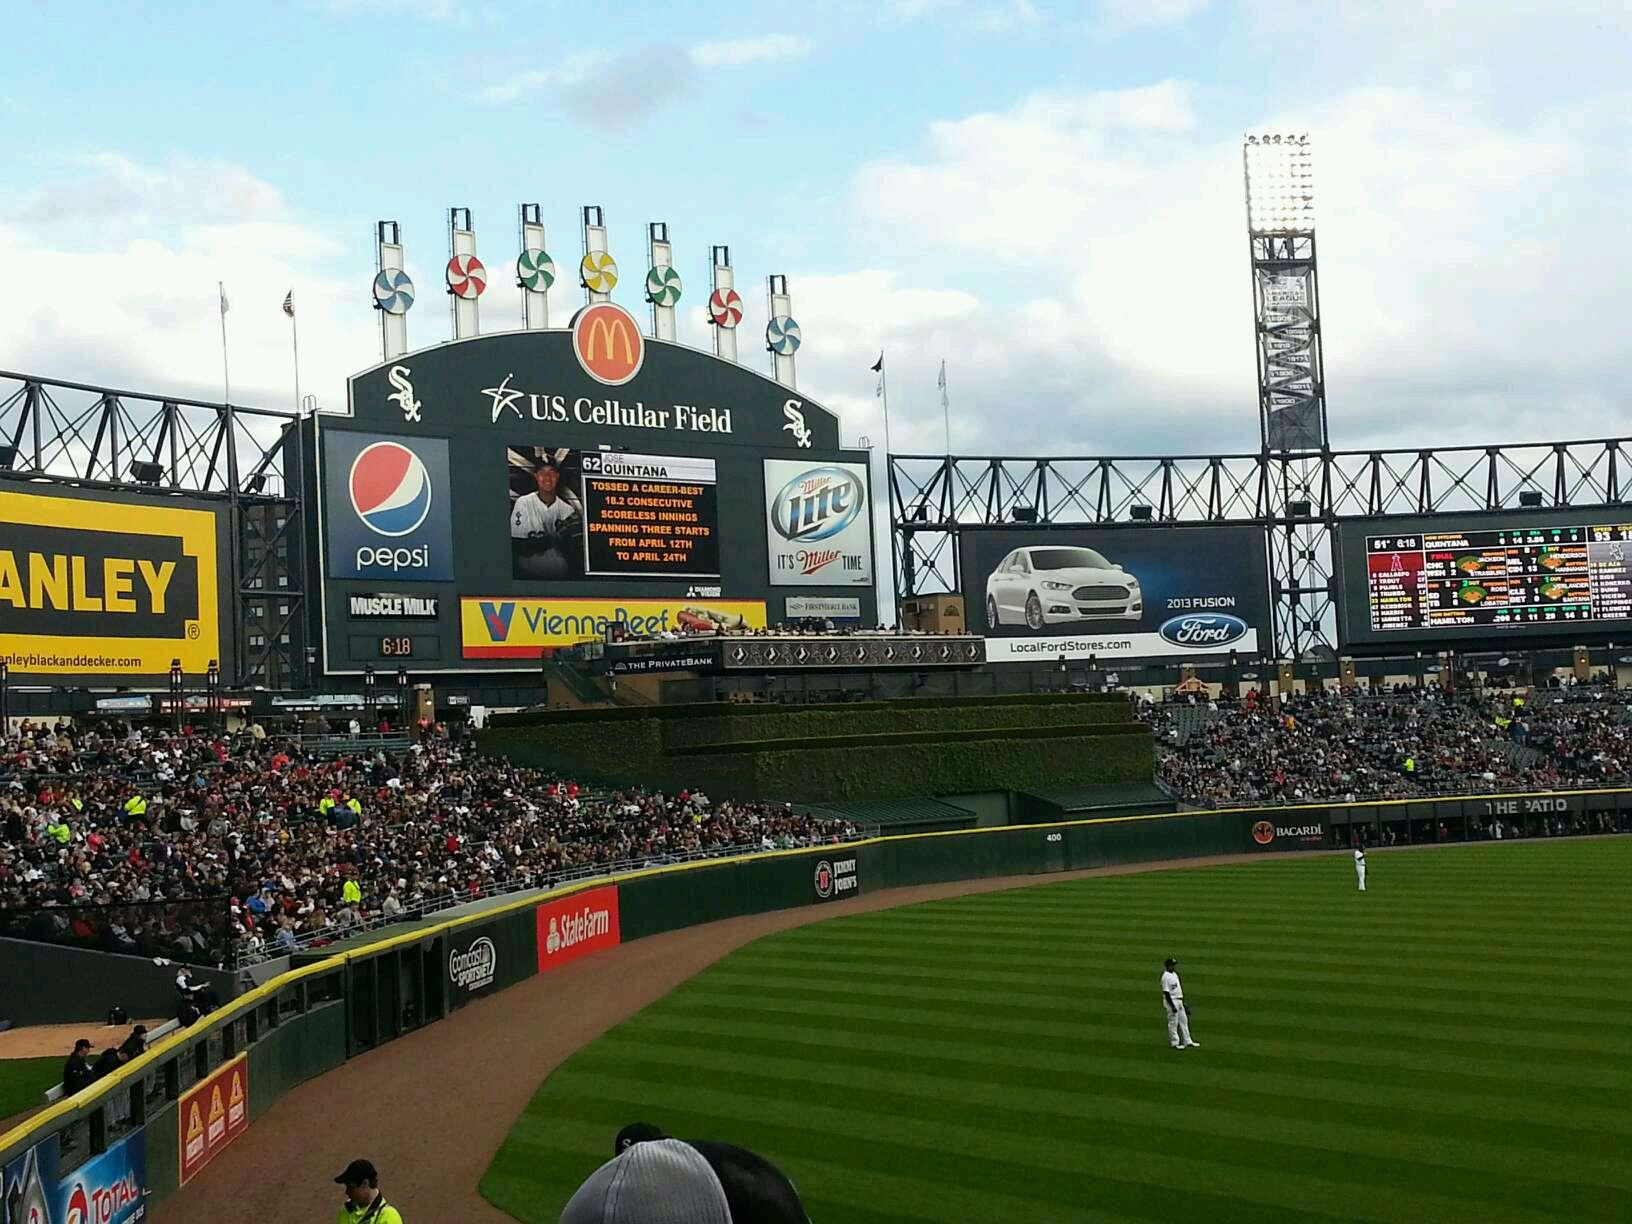 Guaranteed Rate Field Section 151 Row 25 Seat 5